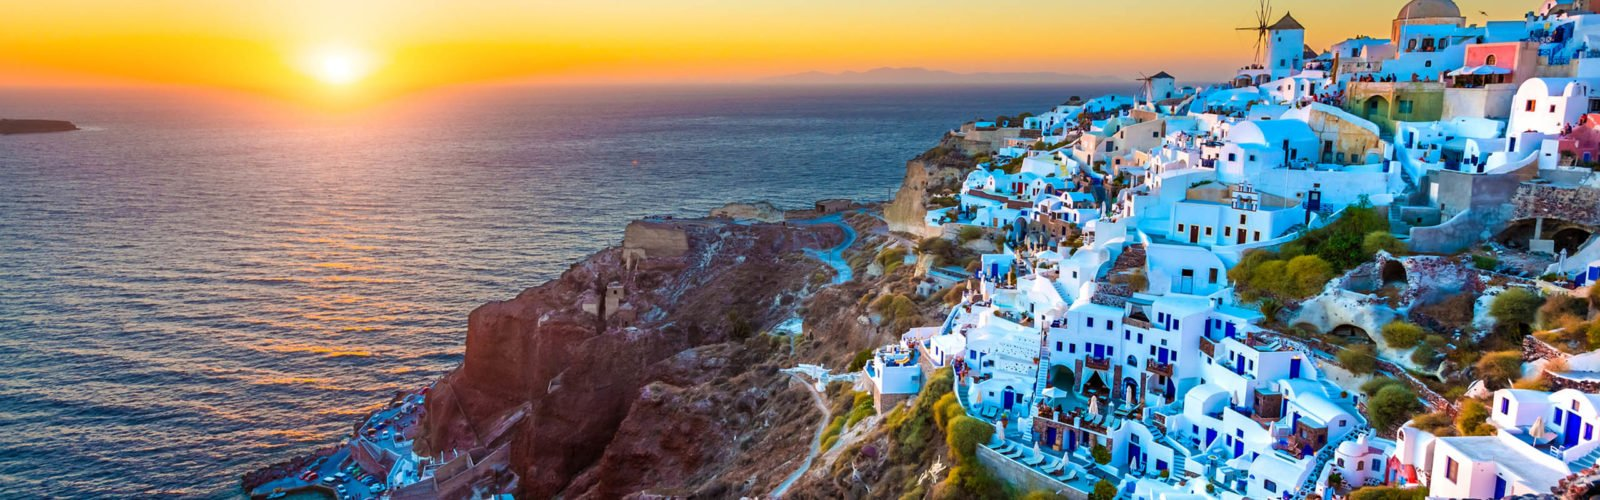 santorini-cyclades-greece